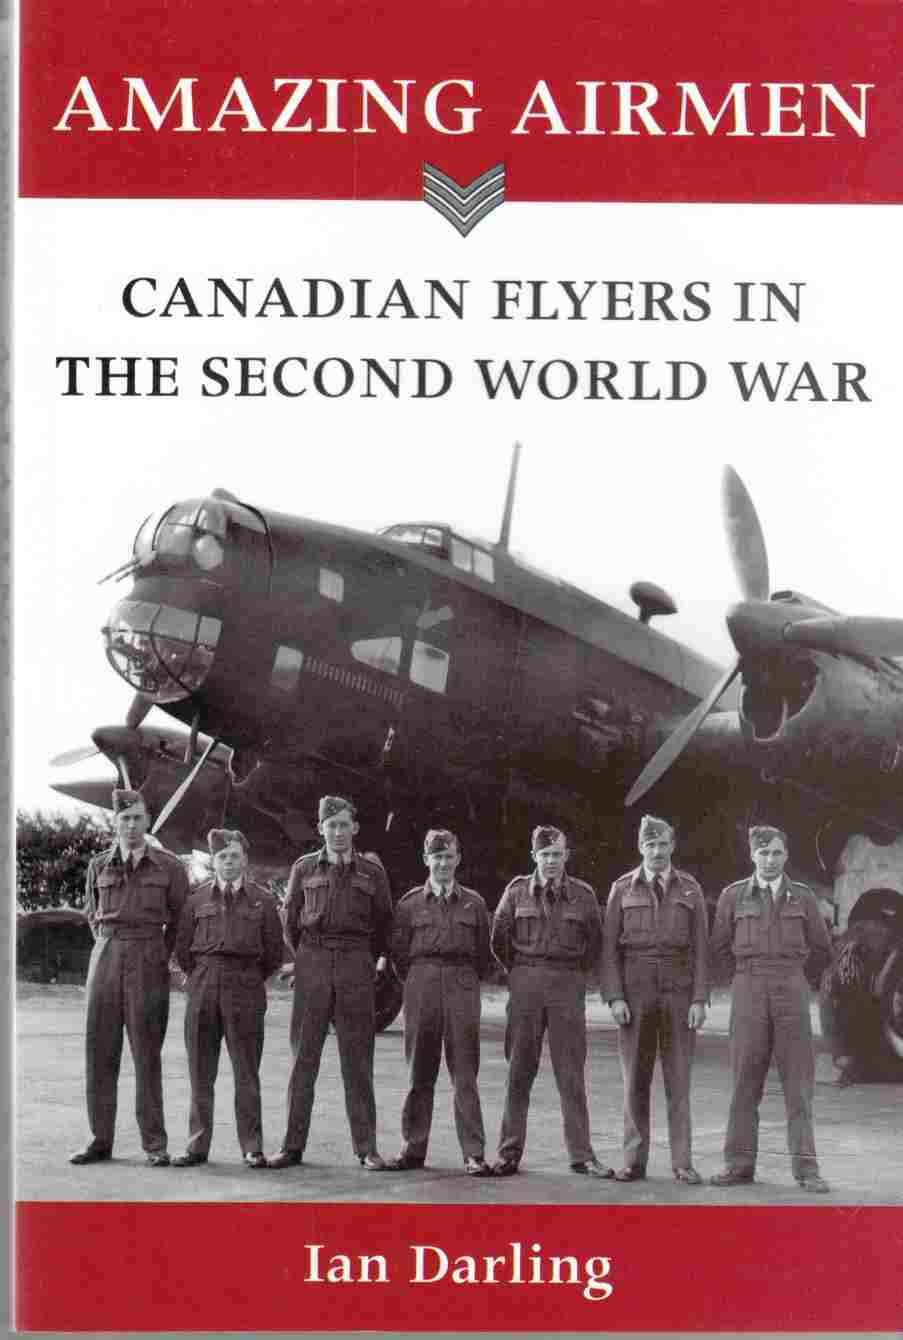 Image for Amazing Airmen Canadian Flyers in the Second World War